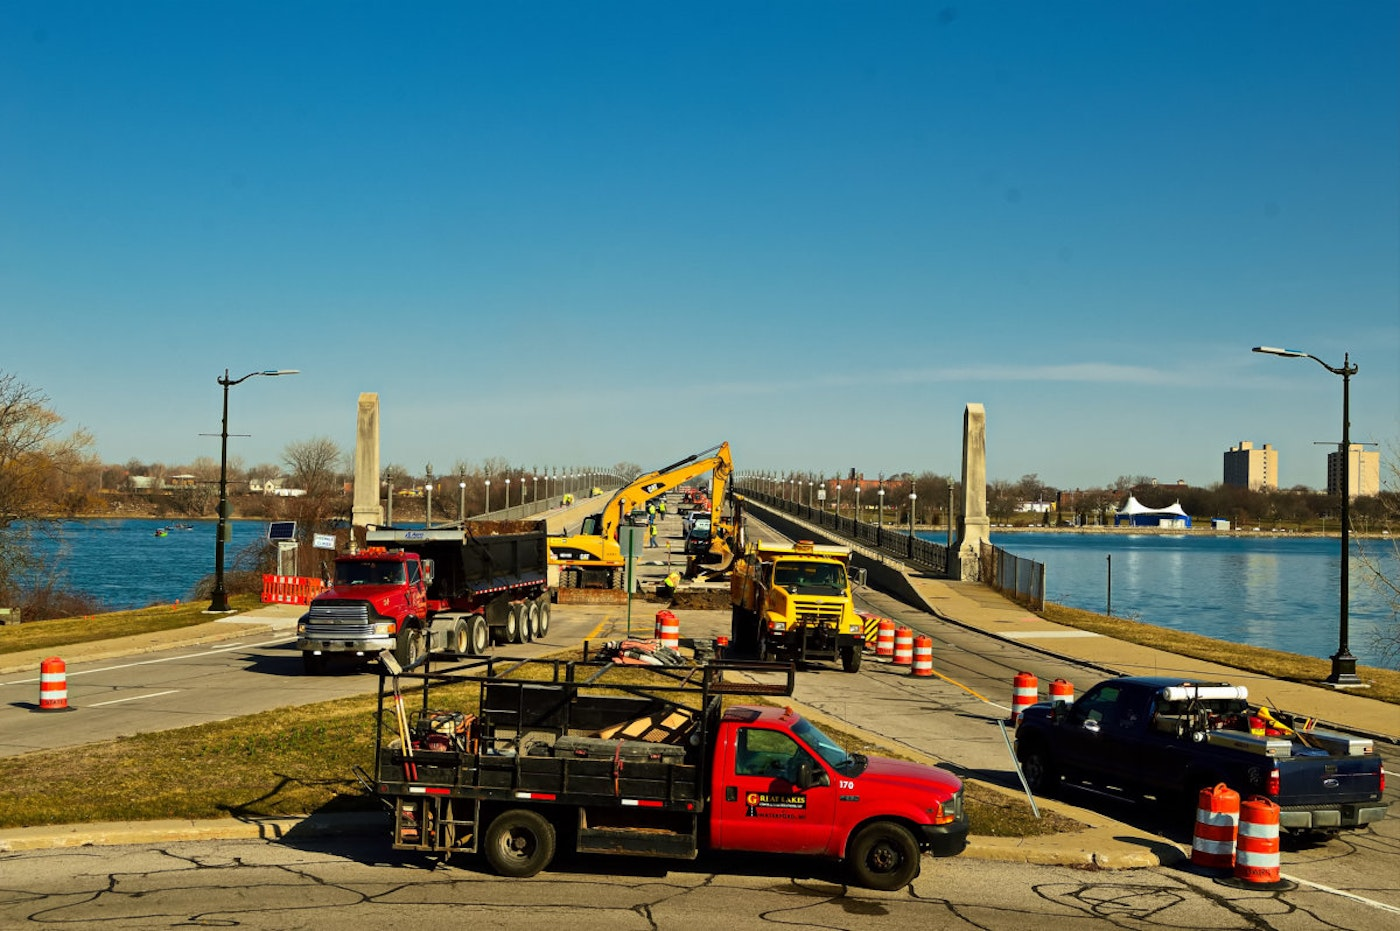 The MacArthur Bridge, which connects Jefferson Avenue to Detroit's Belle Isle, is undergoing extensive construction until fall 2018. A large group of working unrecognizable persons, along with construction barrels, and moving vehicles line the bridge.